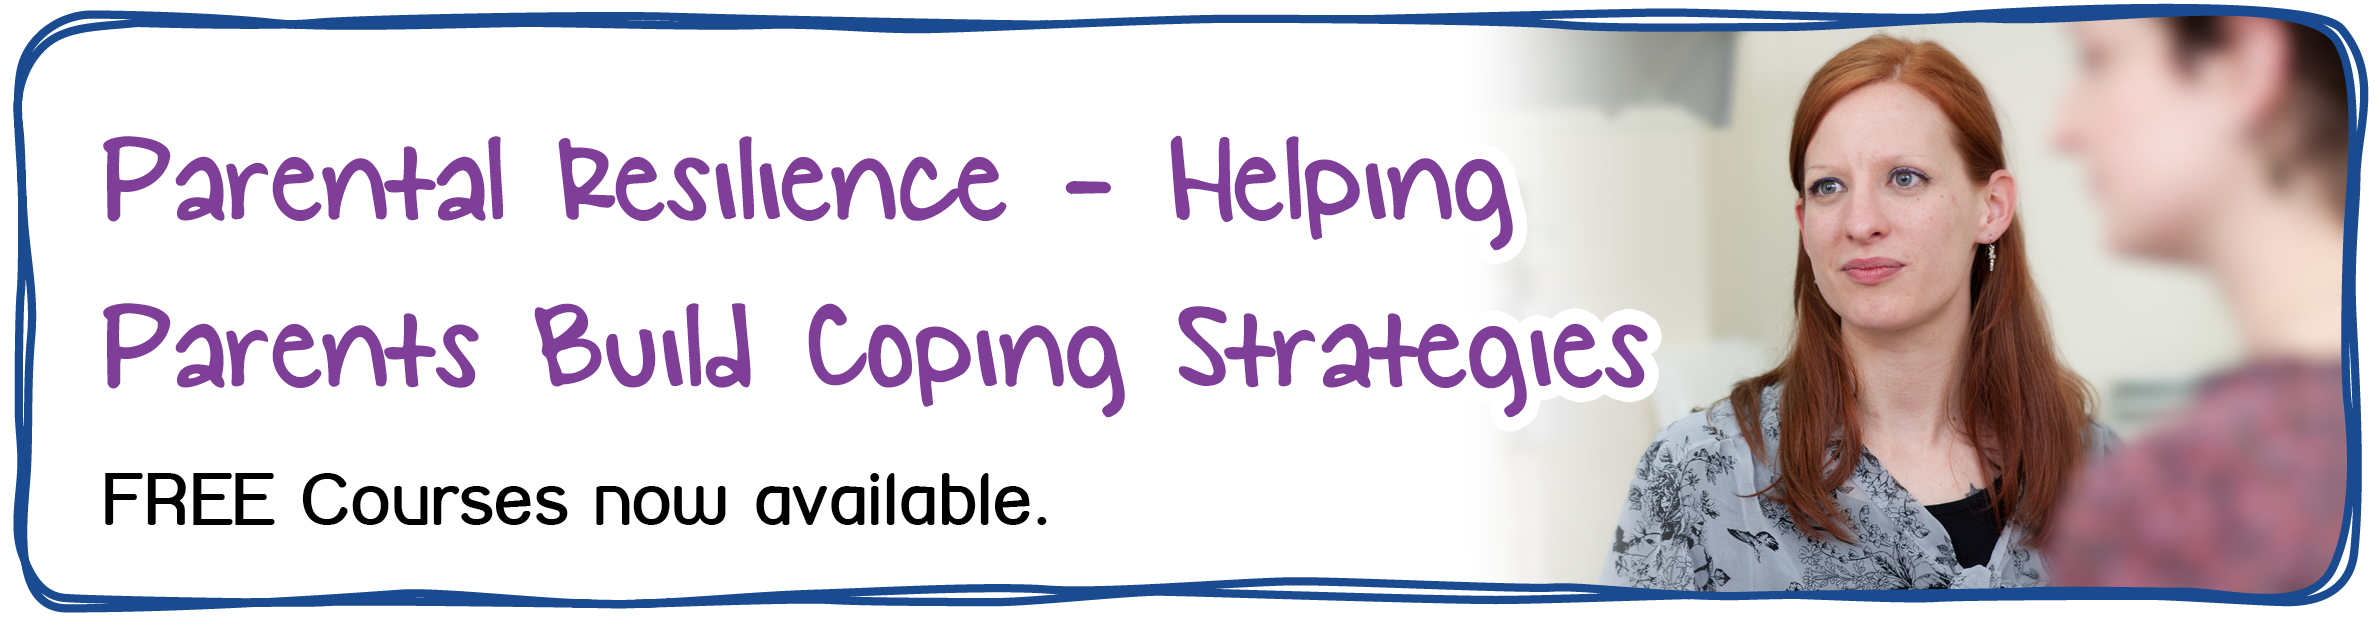 Parental Resilience - Helping Parents Build Coping Strategies FREE Courses now available.